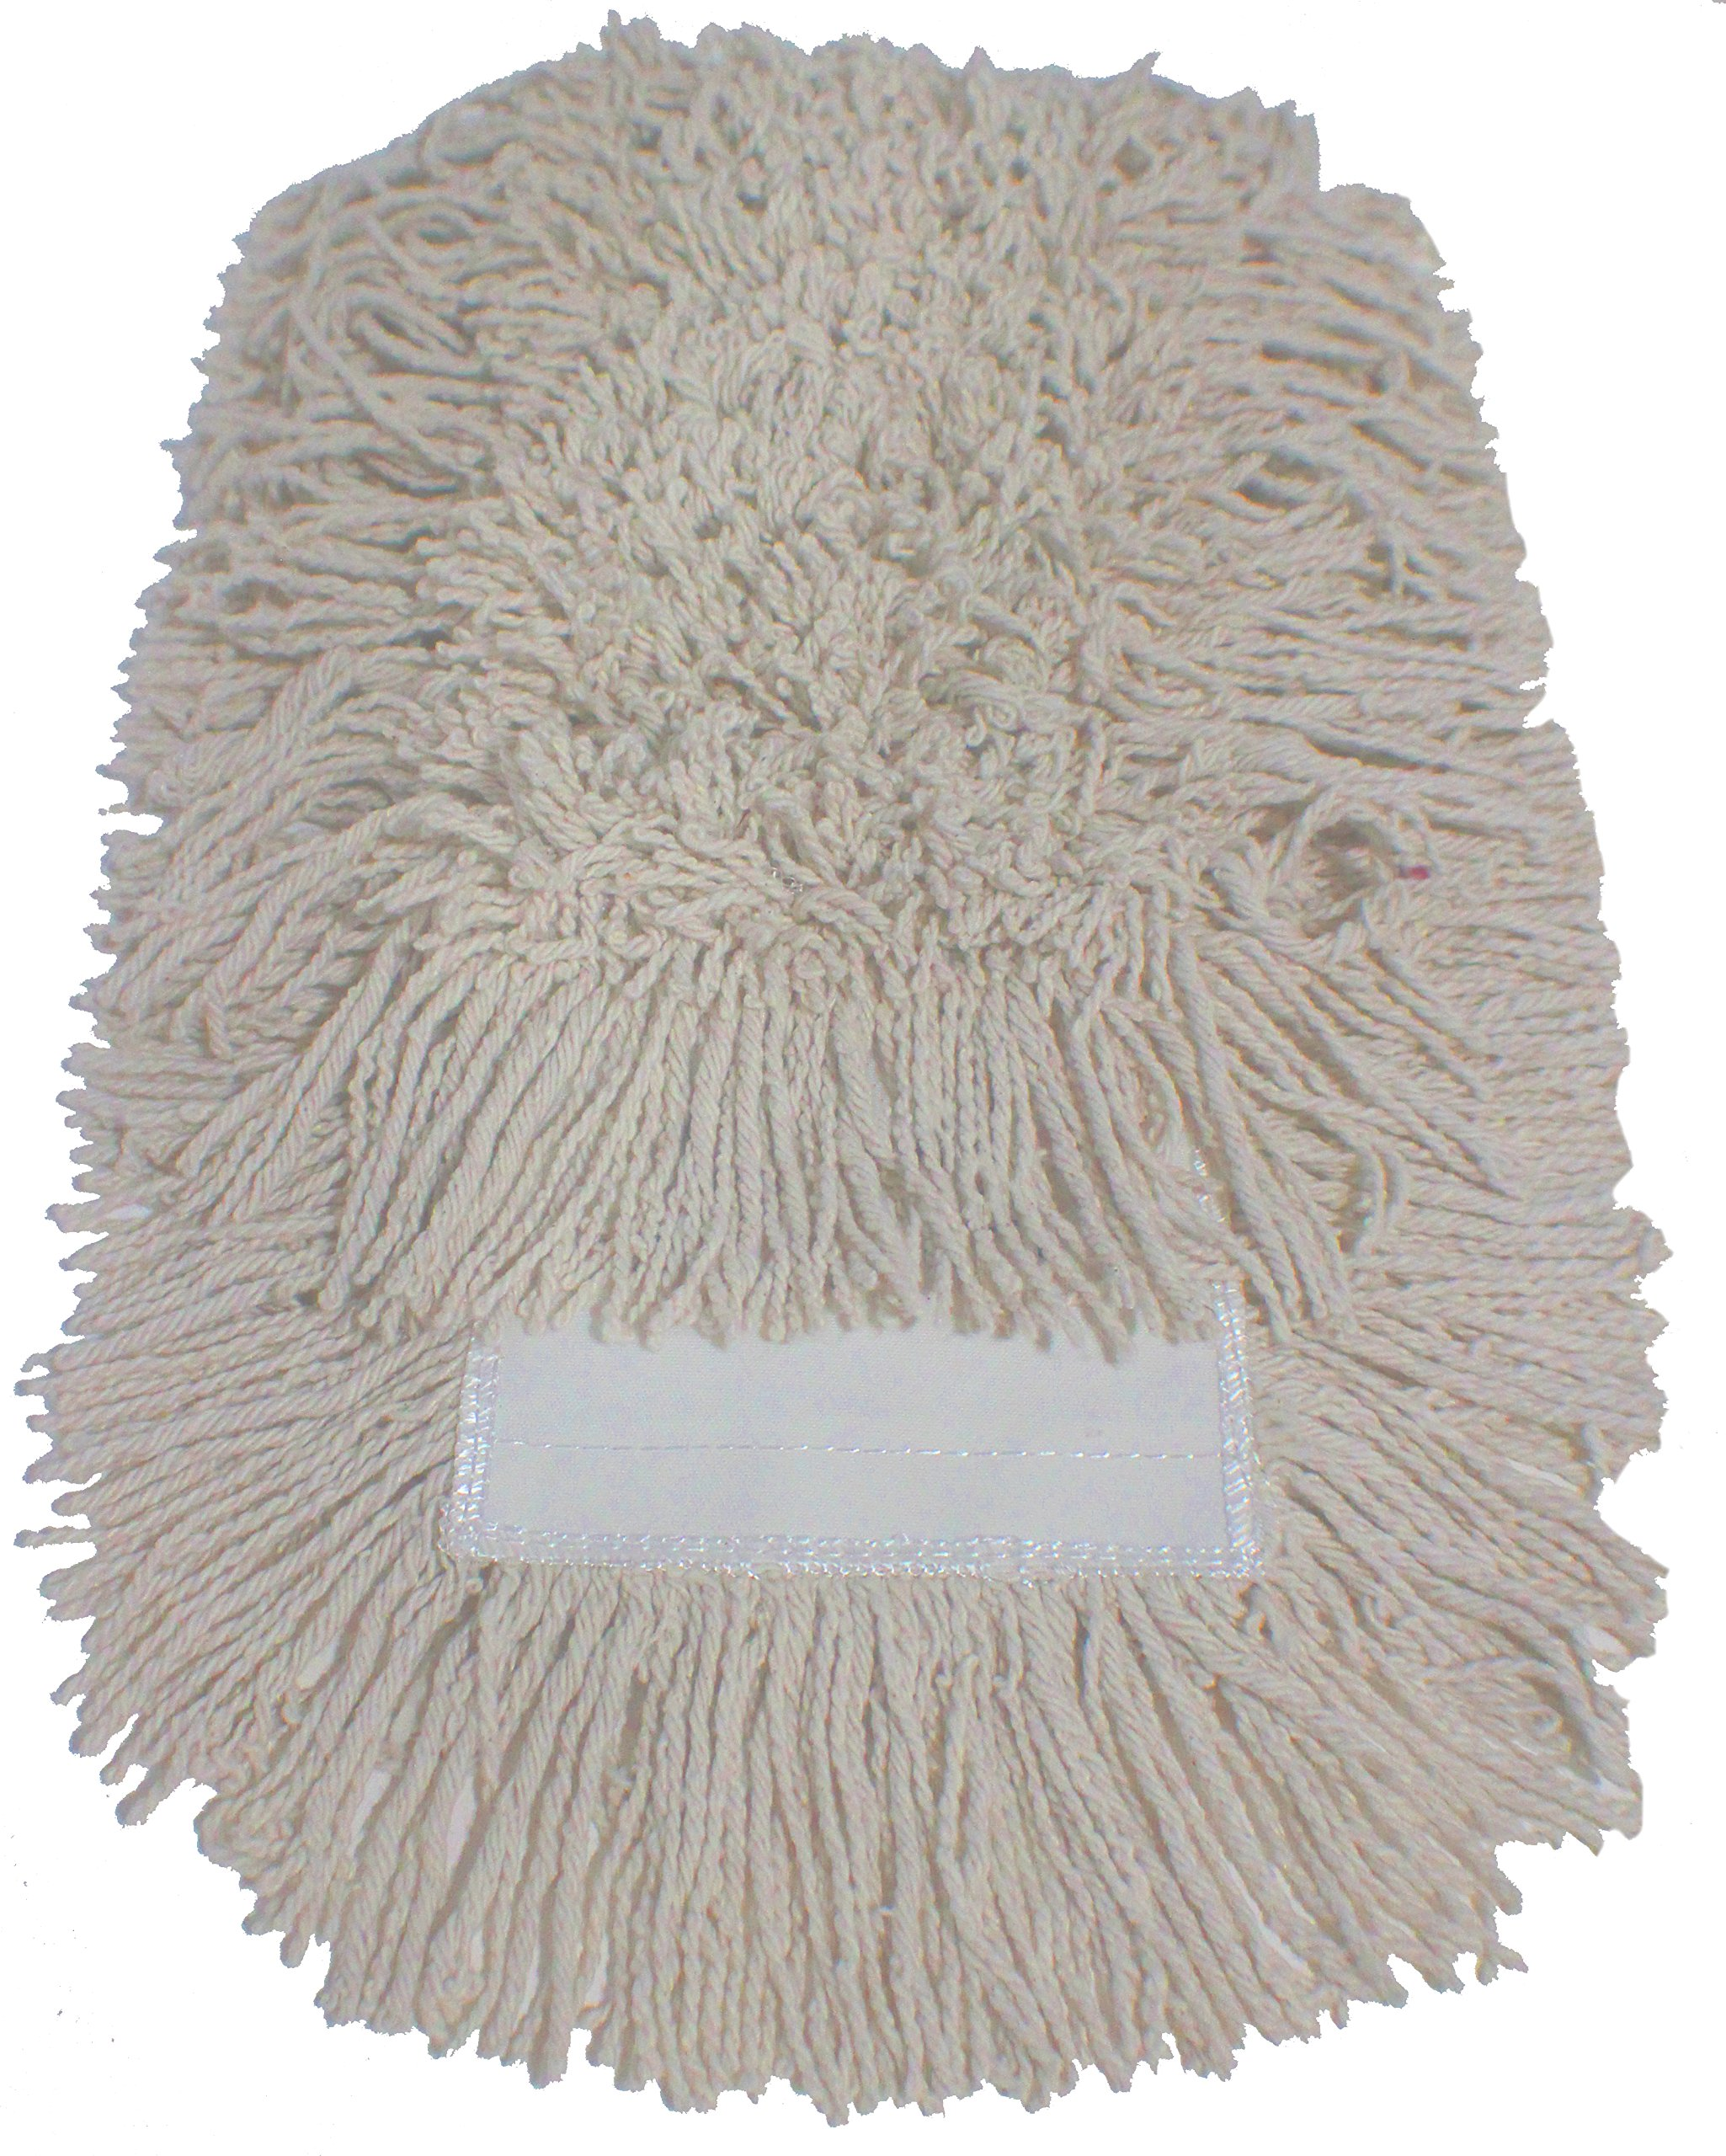 Dust Mop Kit 60'' : (1) 60'' White Industrial Closed-Loop Dust Mop, (1) 60'' Wire Dust Mop Frame & (1) Dust Mop Handle Clip-On Style Wood by Direct Mop Sales, Inc. (Image #5)